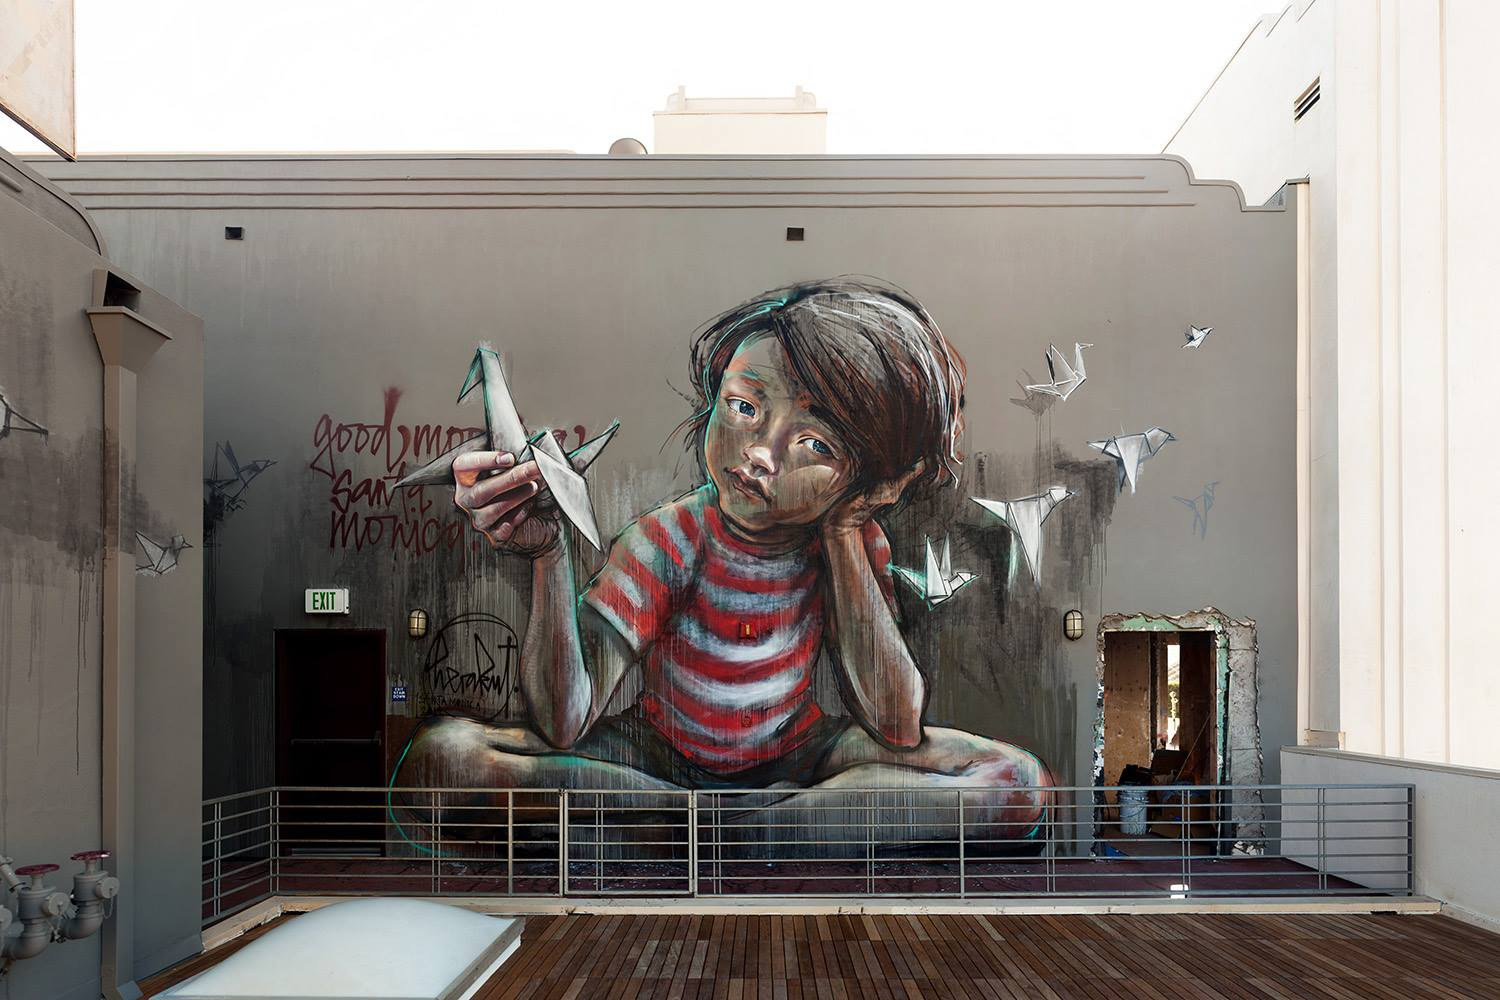 Herakut with a rooftop mural in Santa Monica.